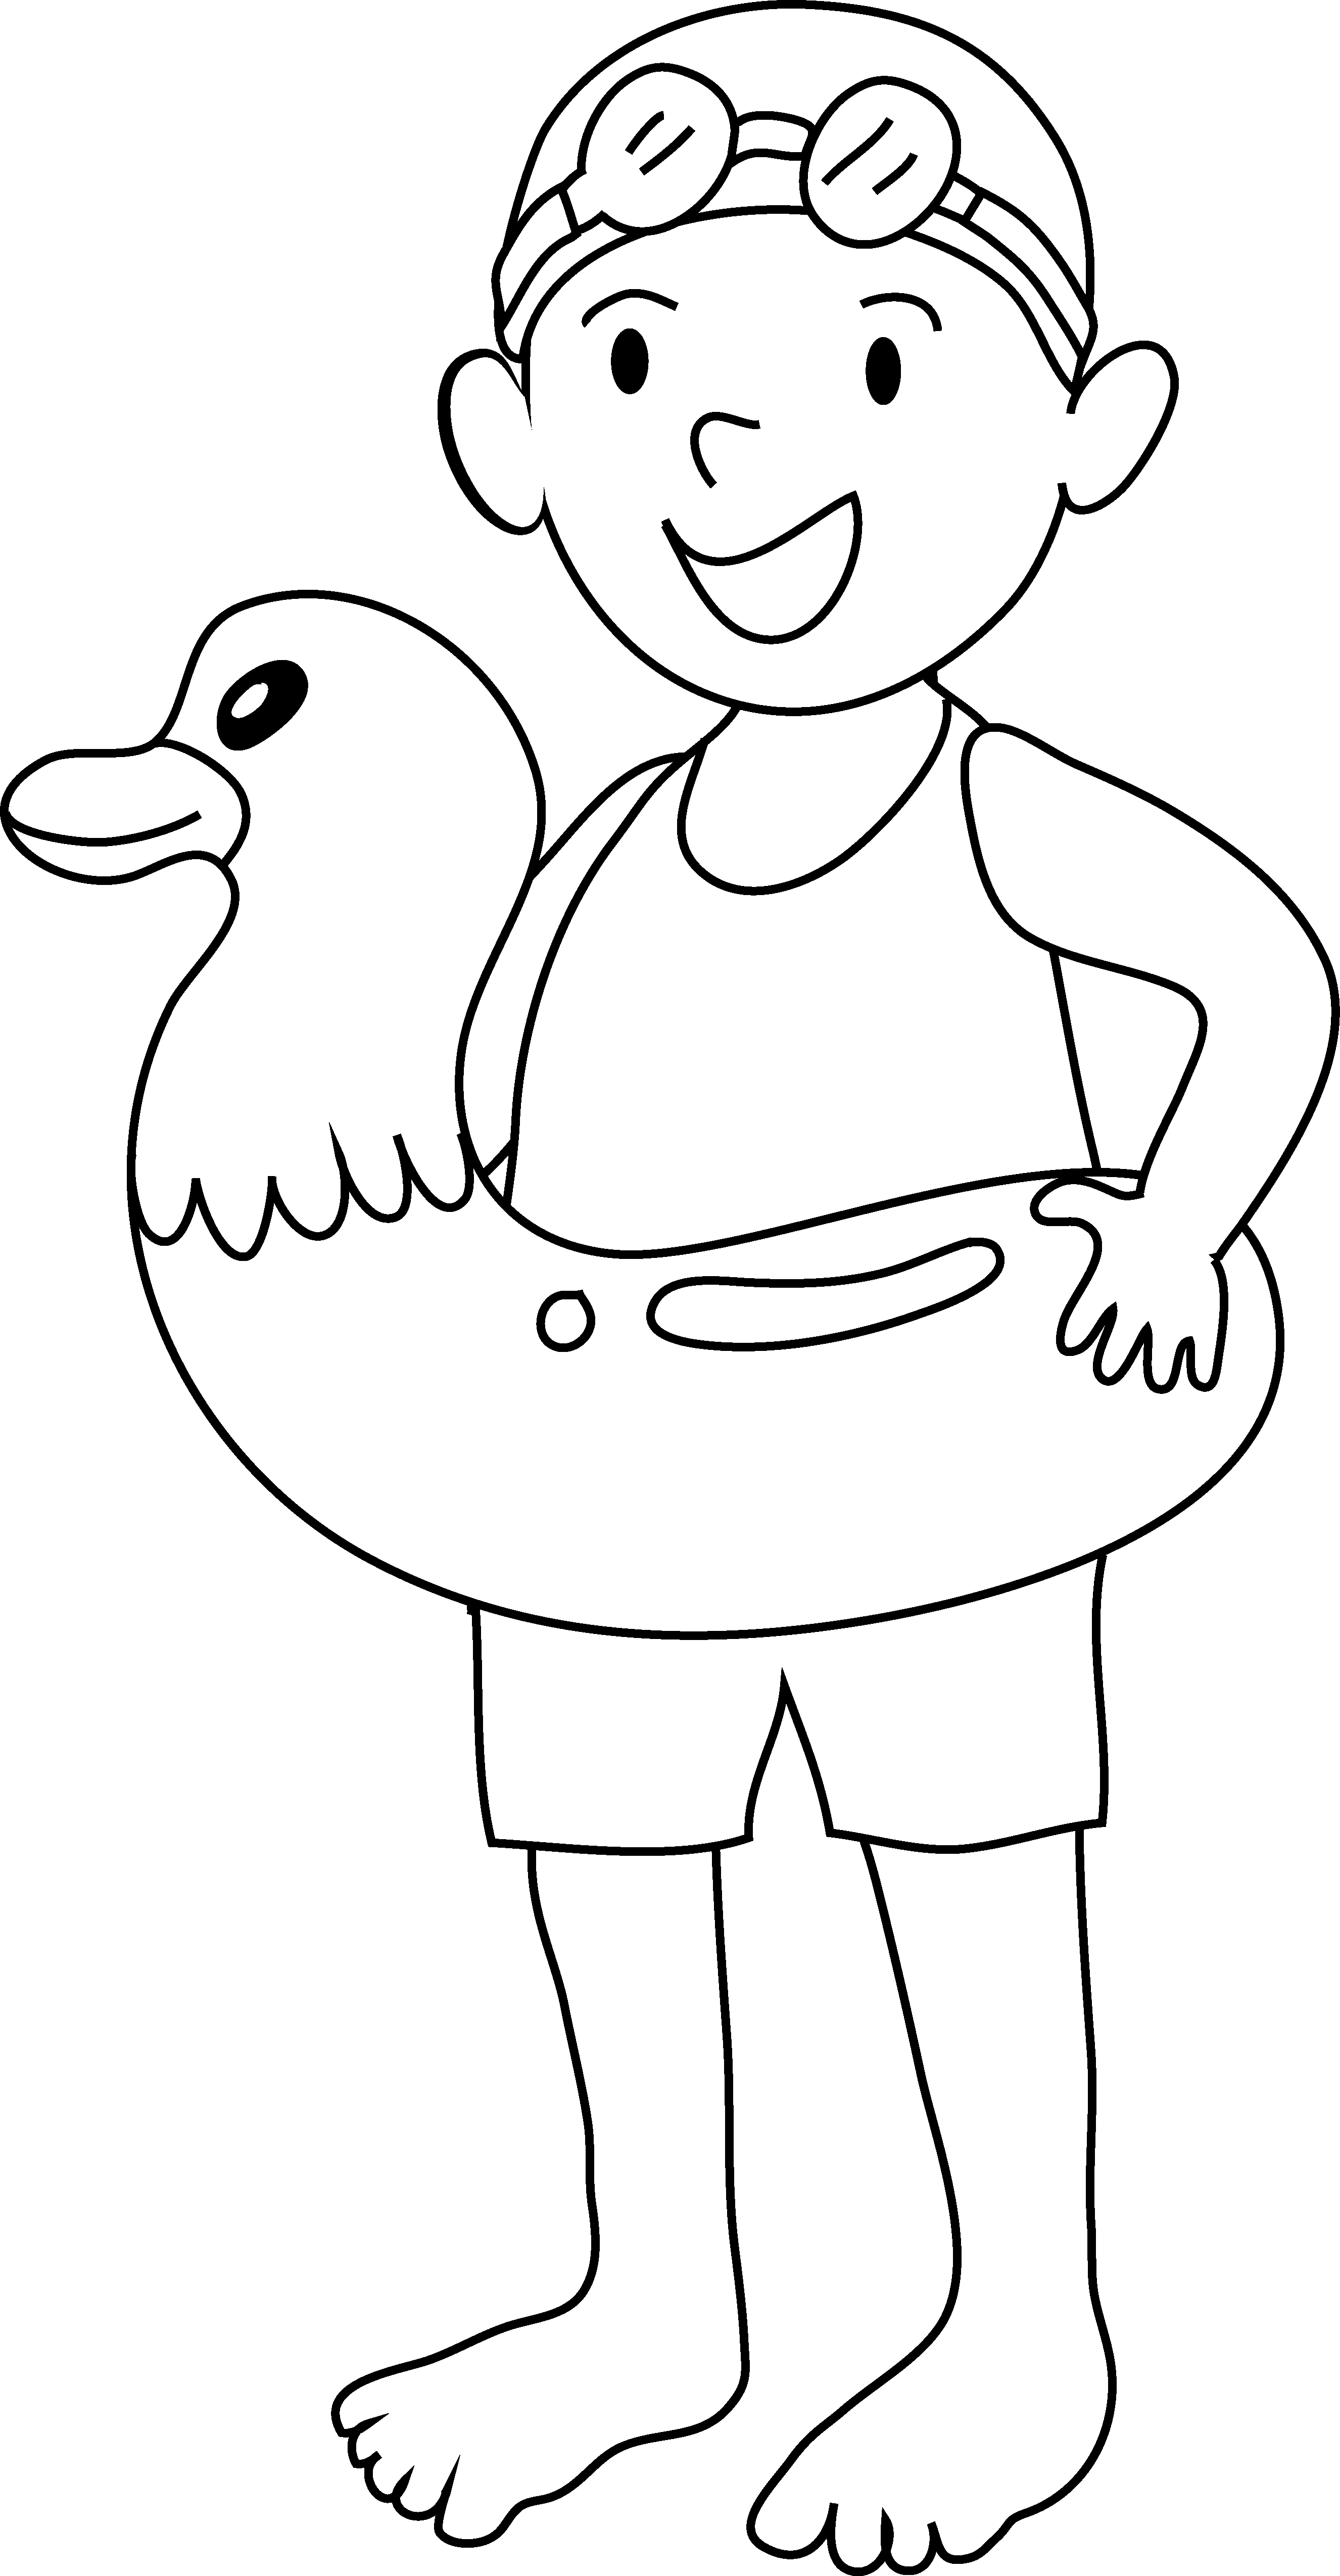 jpg black and white library Coloring page of going. Kid swimming clipart